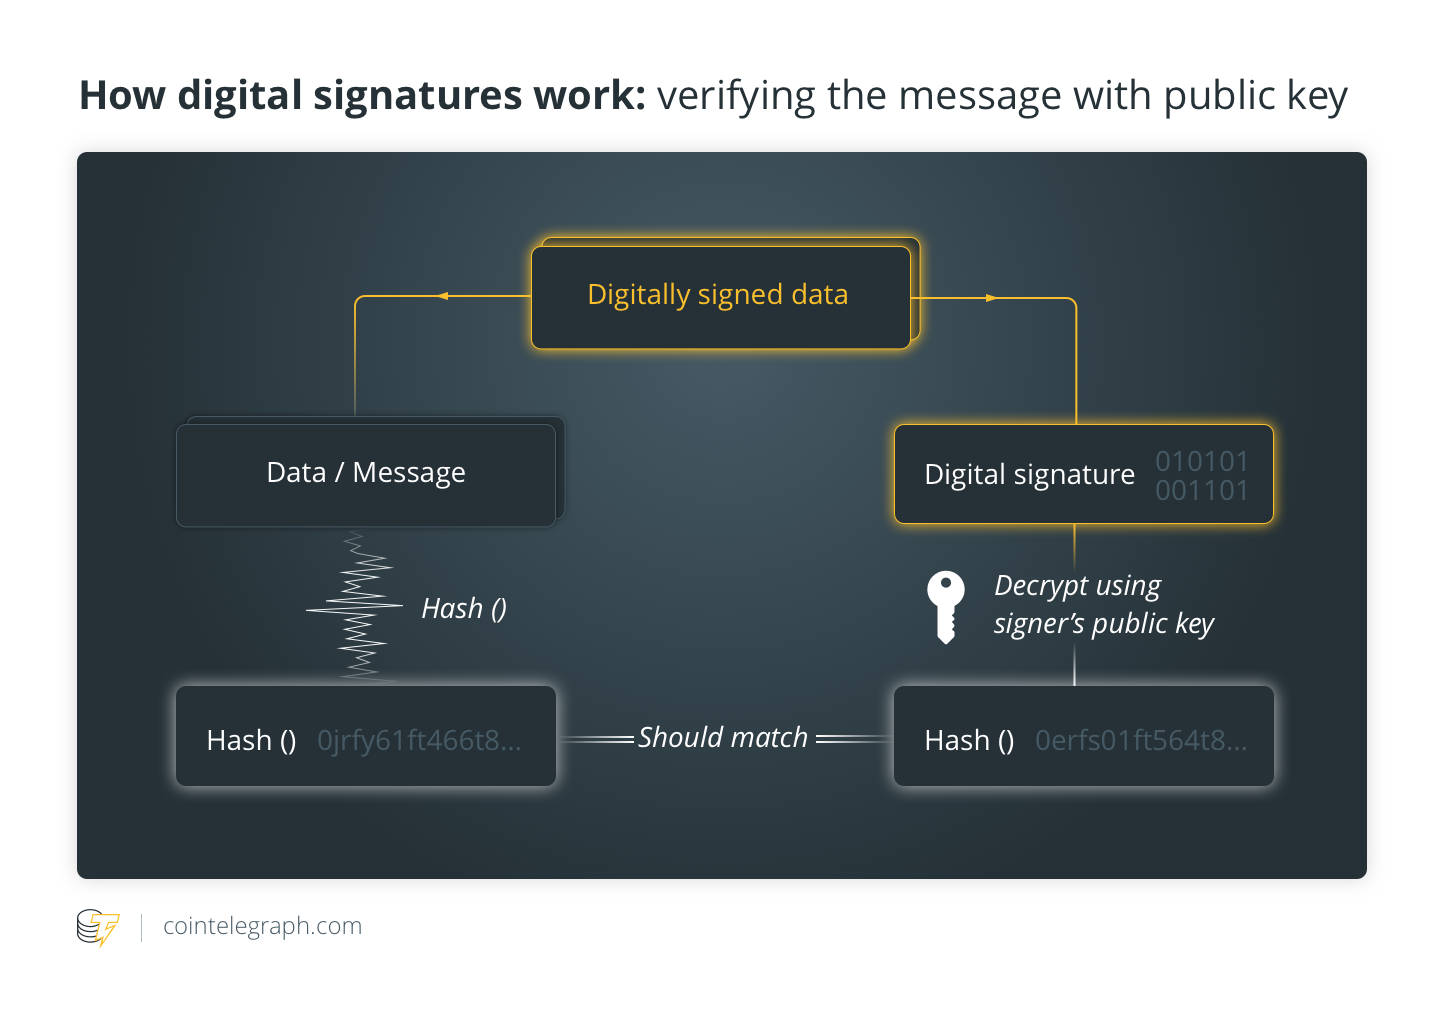 How digital signatures work: verifying the message with public key